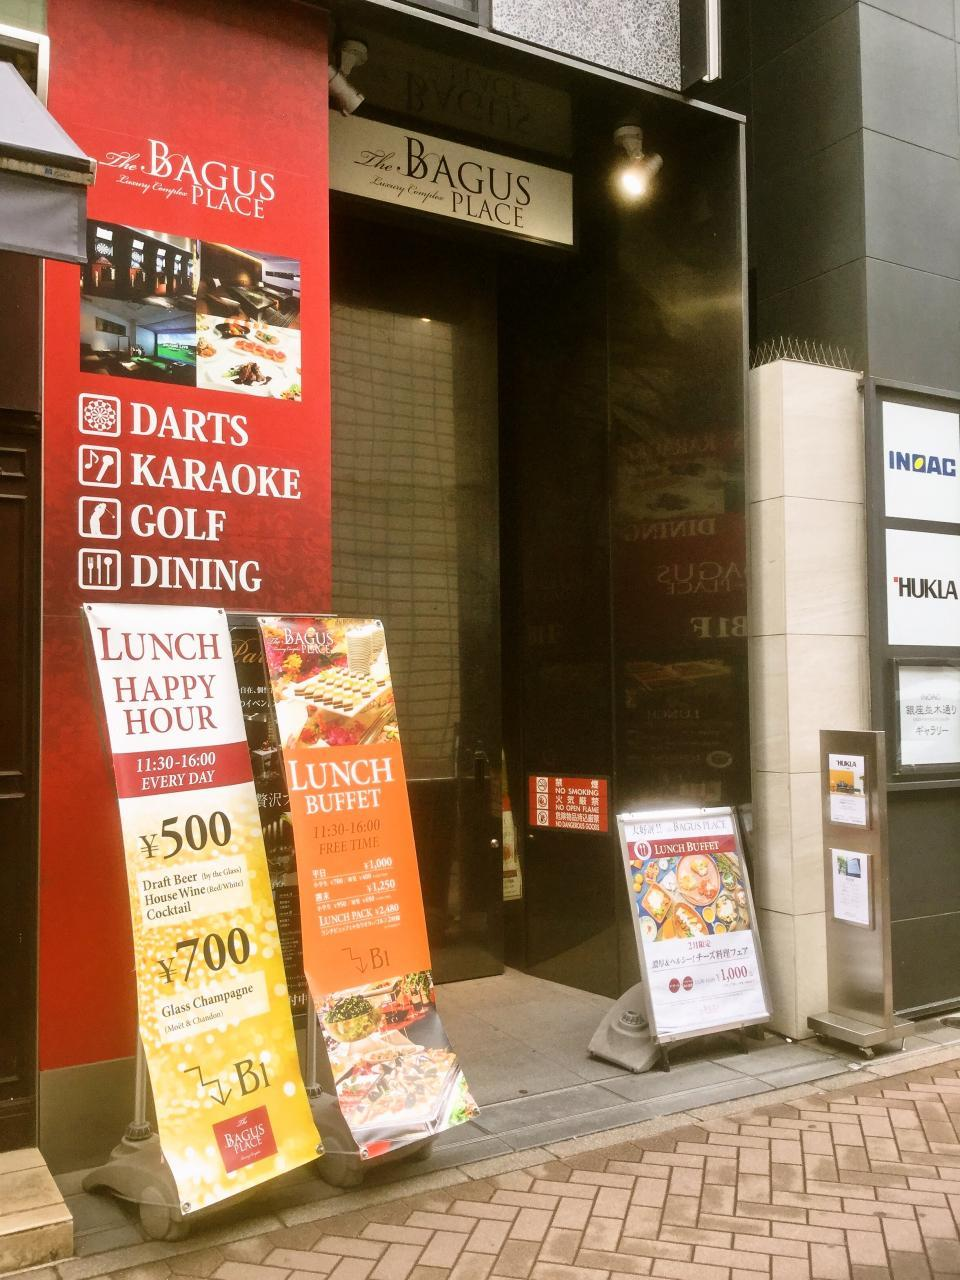 The BAGUS PLACE(店舗)